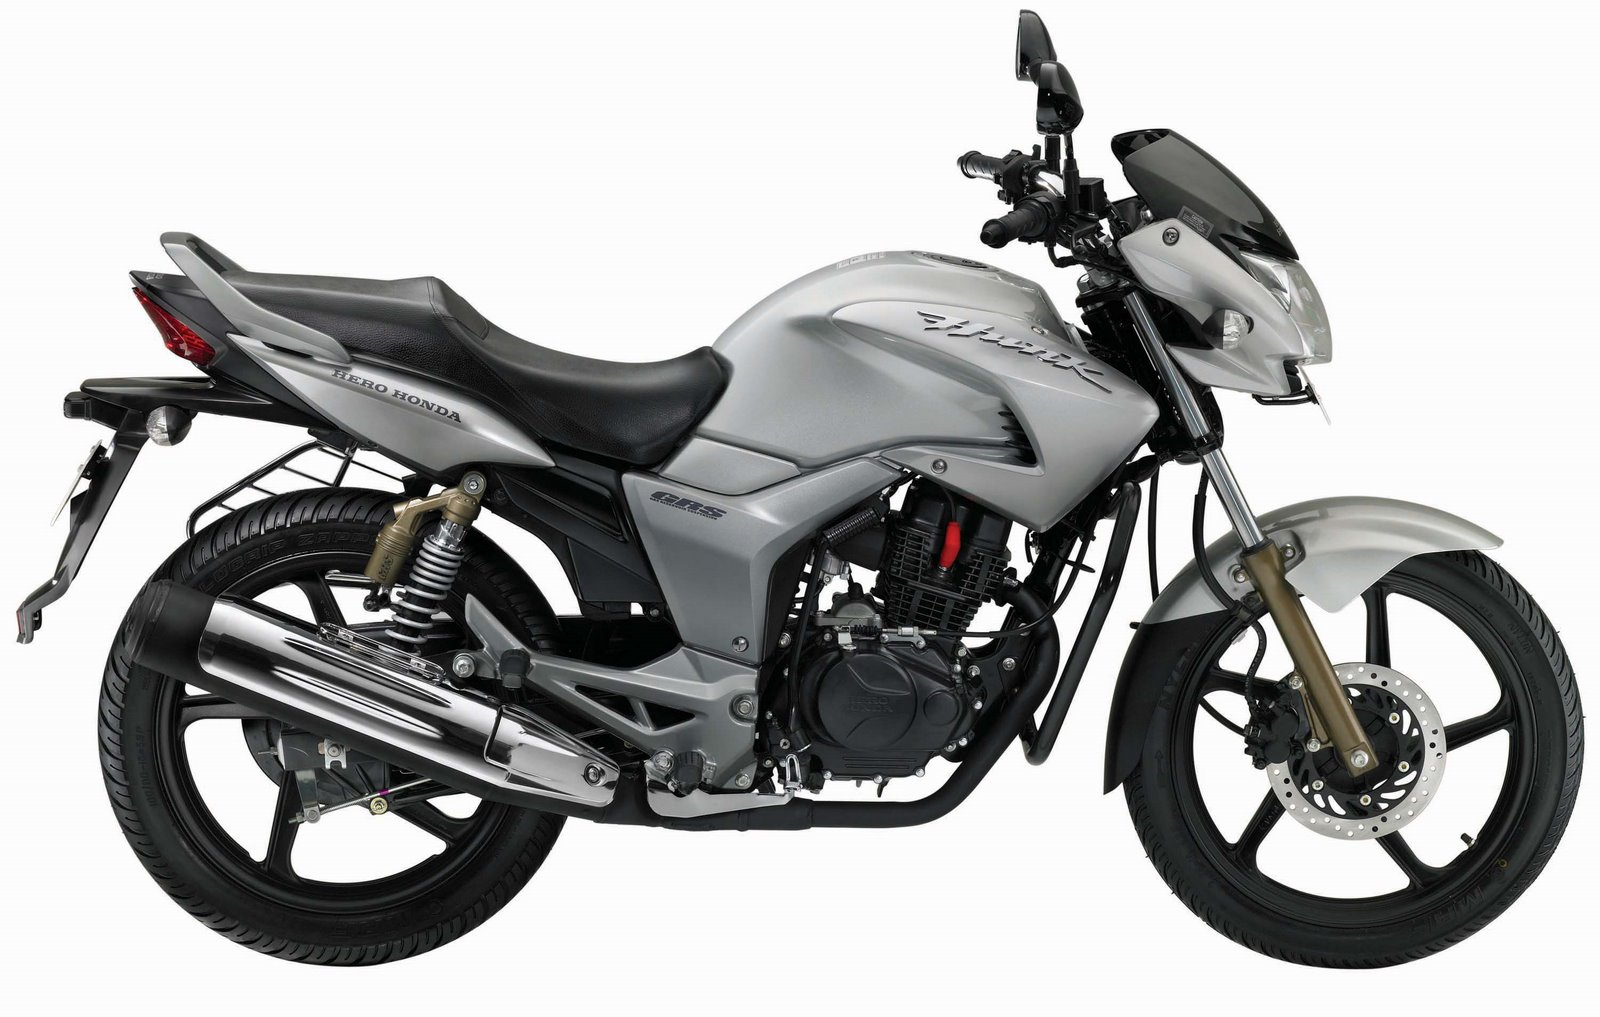 hero moto corp All new hero hastur the hero hastur is powered by a 620cc, parallel twin, liquid-cooled, four-stroke engine which can produce the maximum power output of 78 bhp @ 9600 rpm in coupling with the maximum torque output of 72 nm @ 7750 rpm respectively.